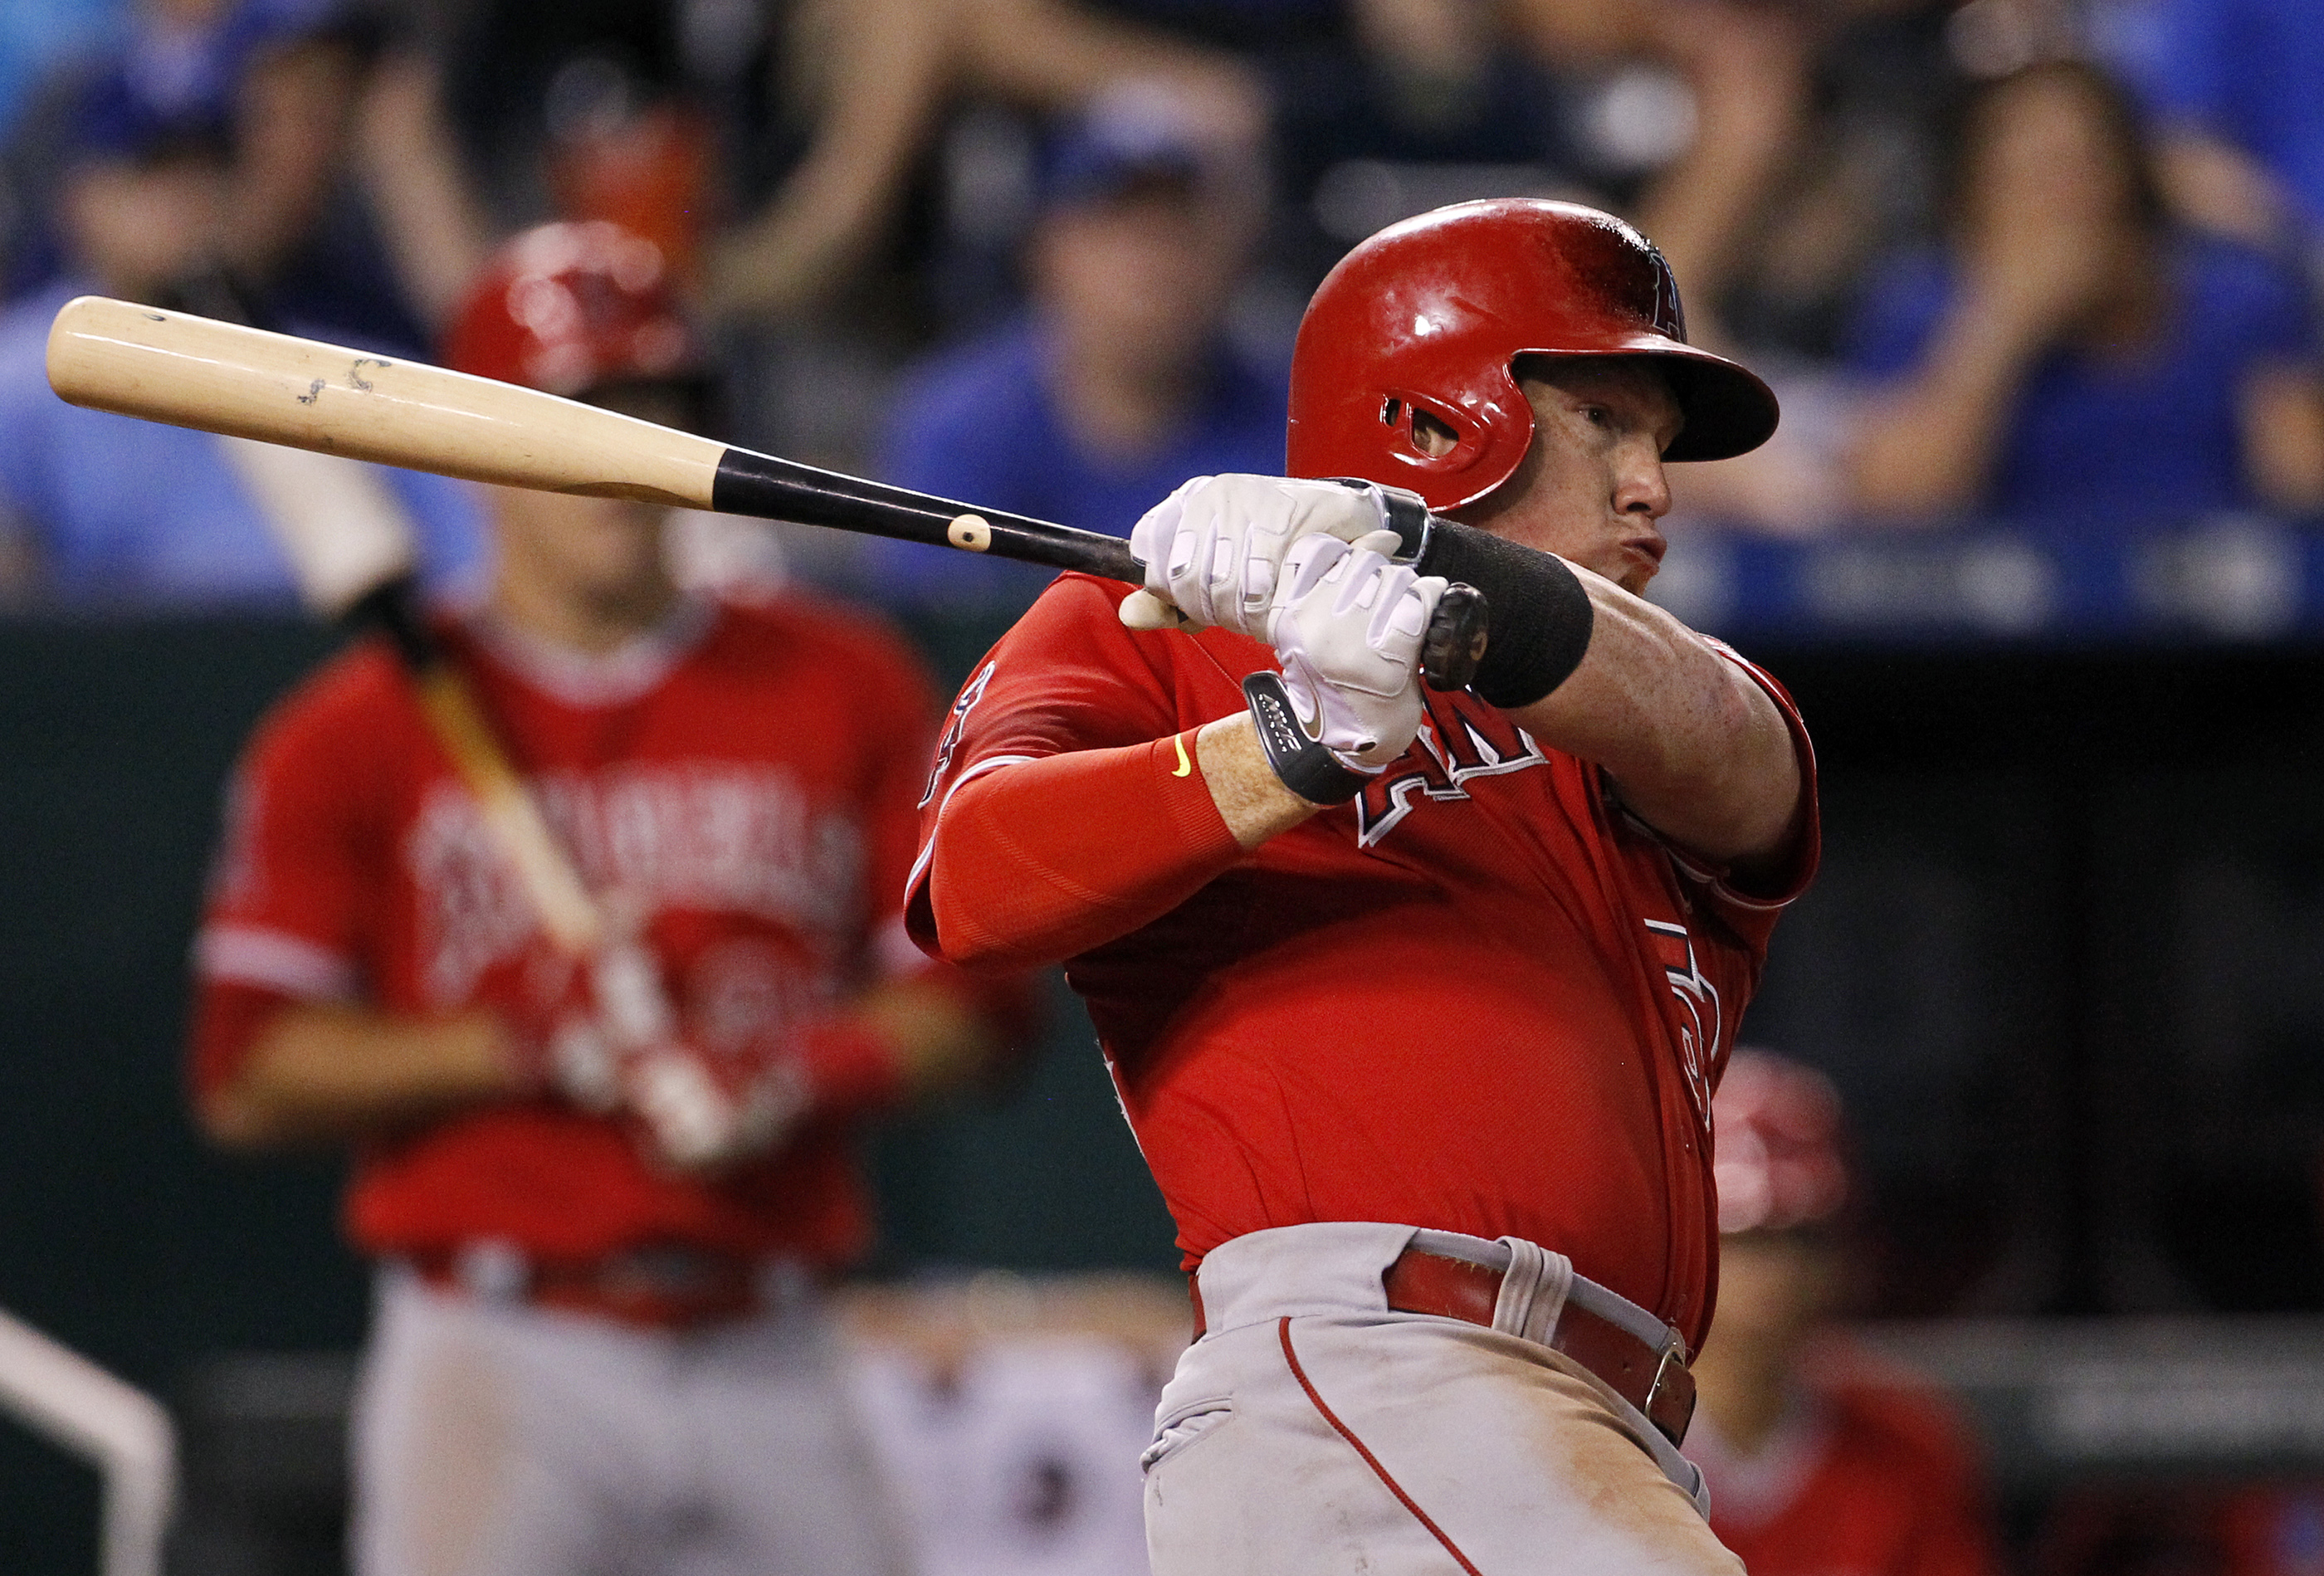 Los Angeles Angels' Kole Calhoun connects for a double, scoring two runs in the ninth inning of a baseball game against the Kansas City Royals, at Kauffman Stadium in Kansas City, Mo., Thursday, Aug. 13, 2015. (AP Photo/Colin E. Braley)